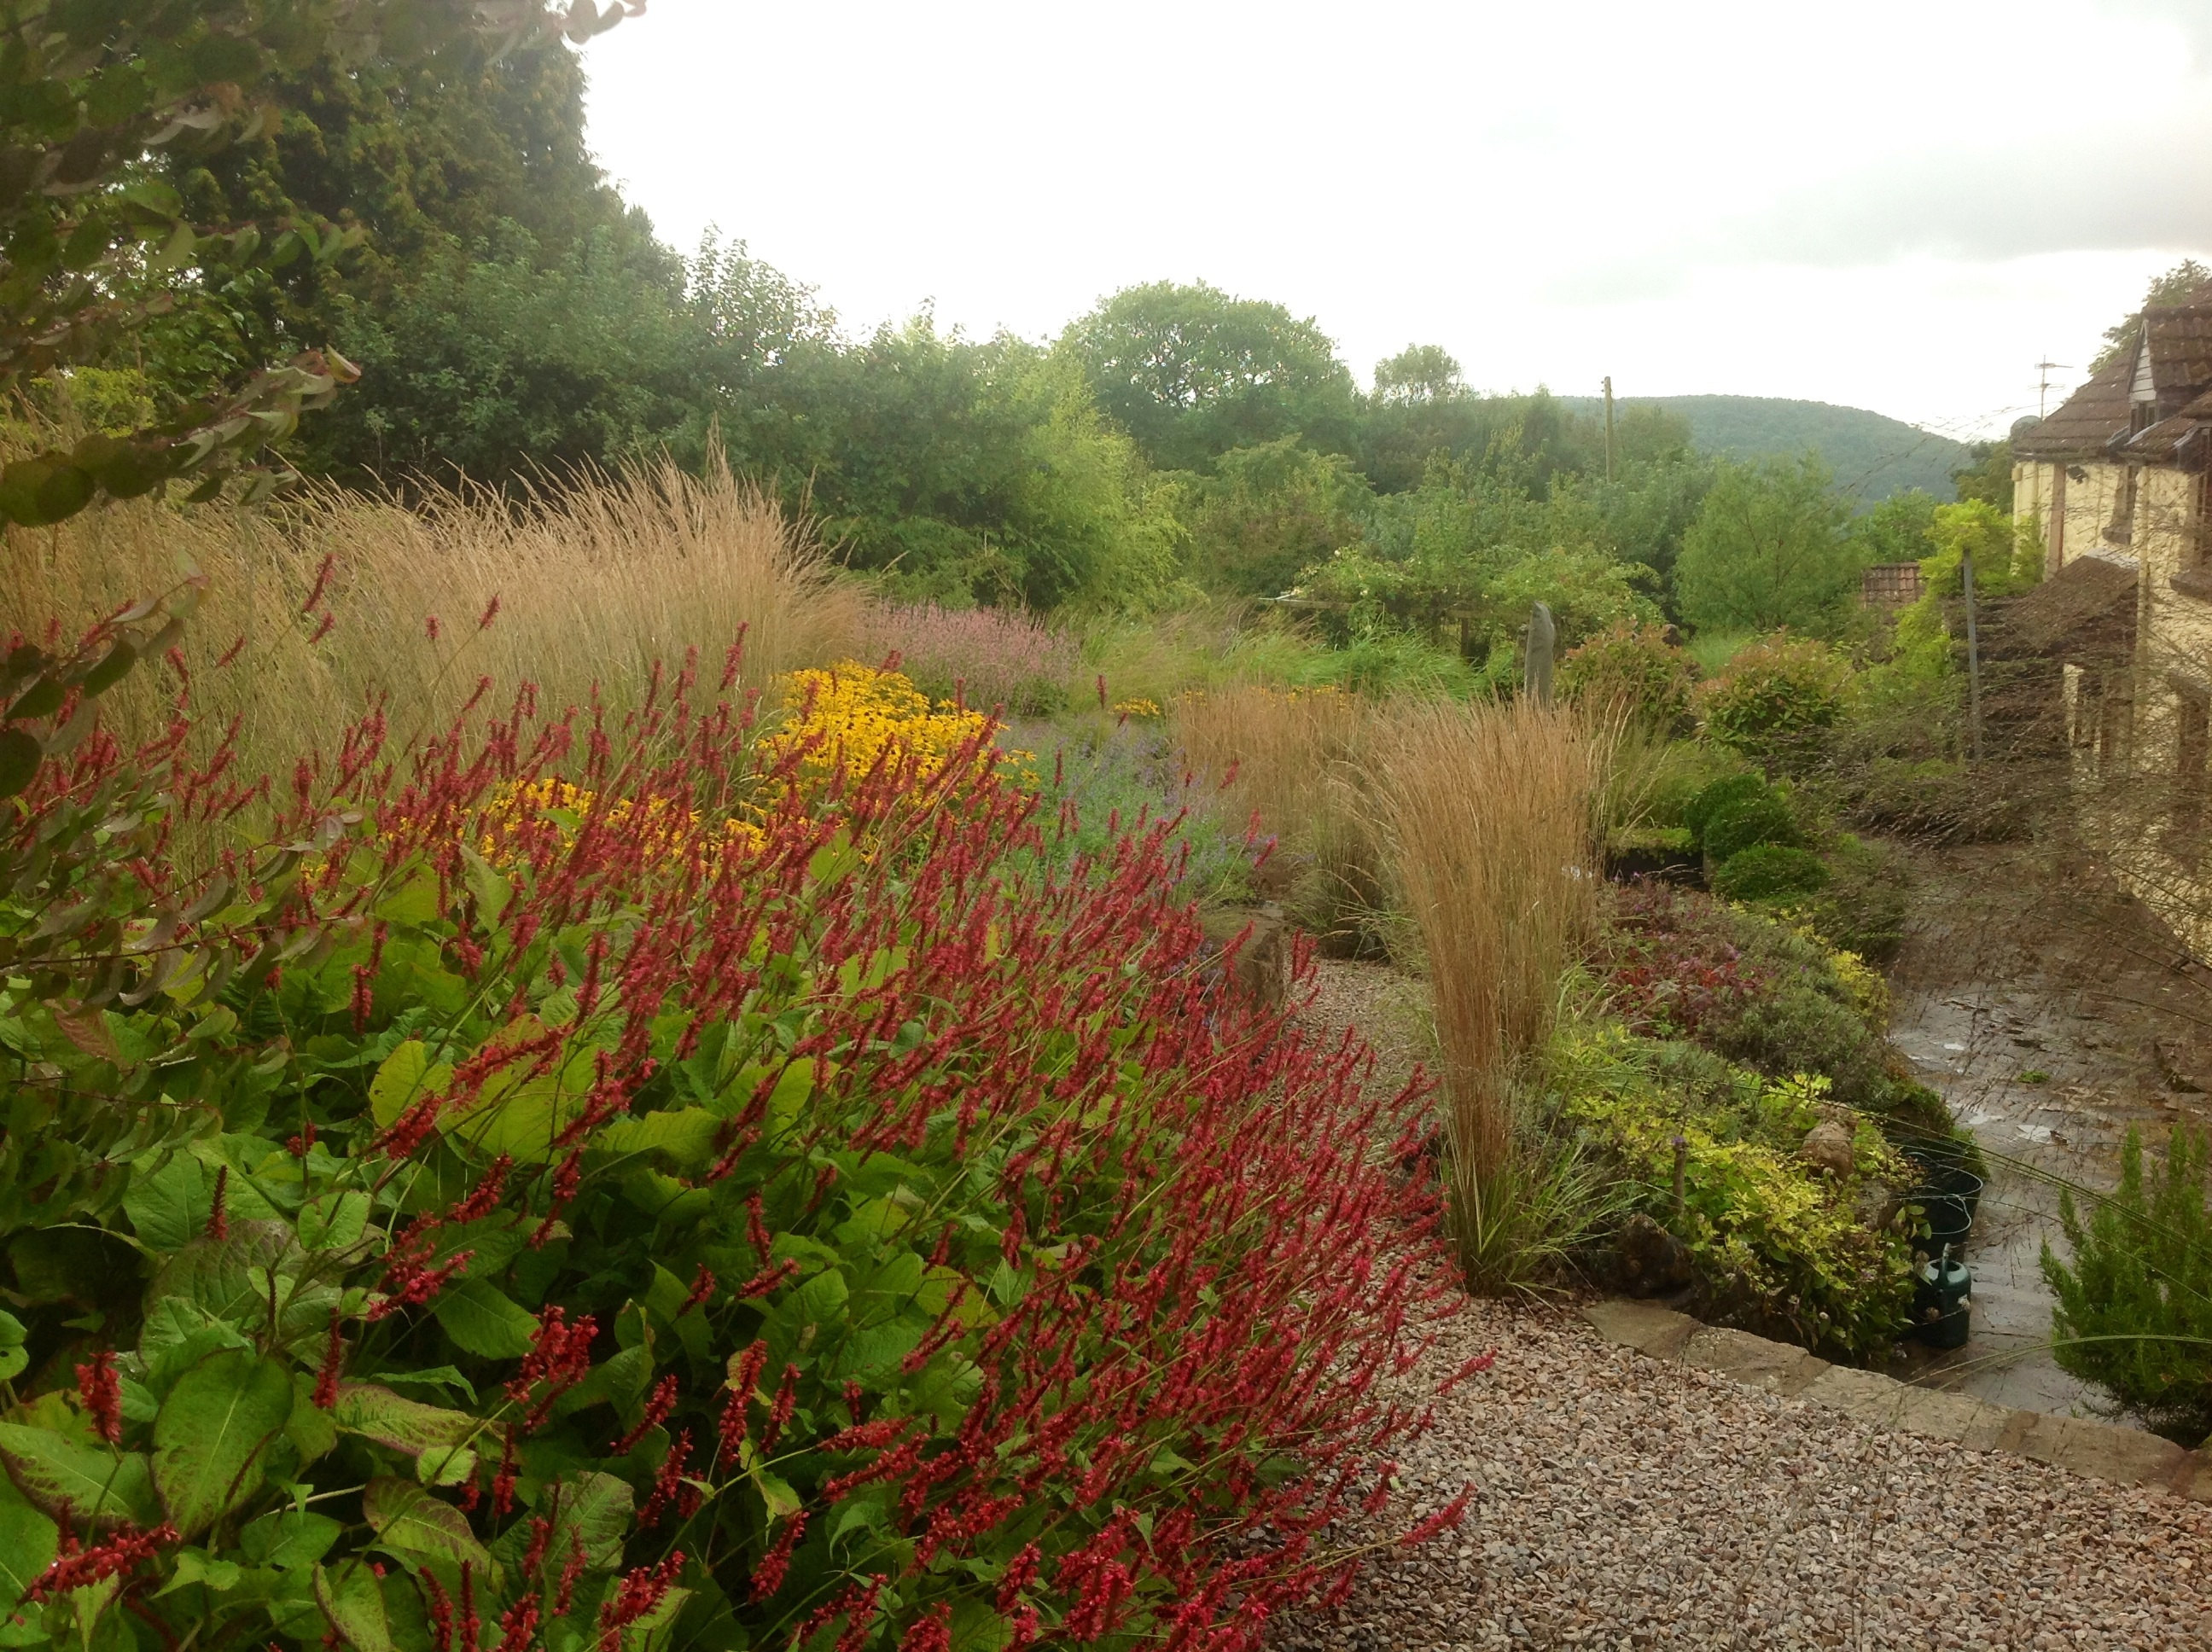 Barn House Garden | A garden set in the Wye Valley